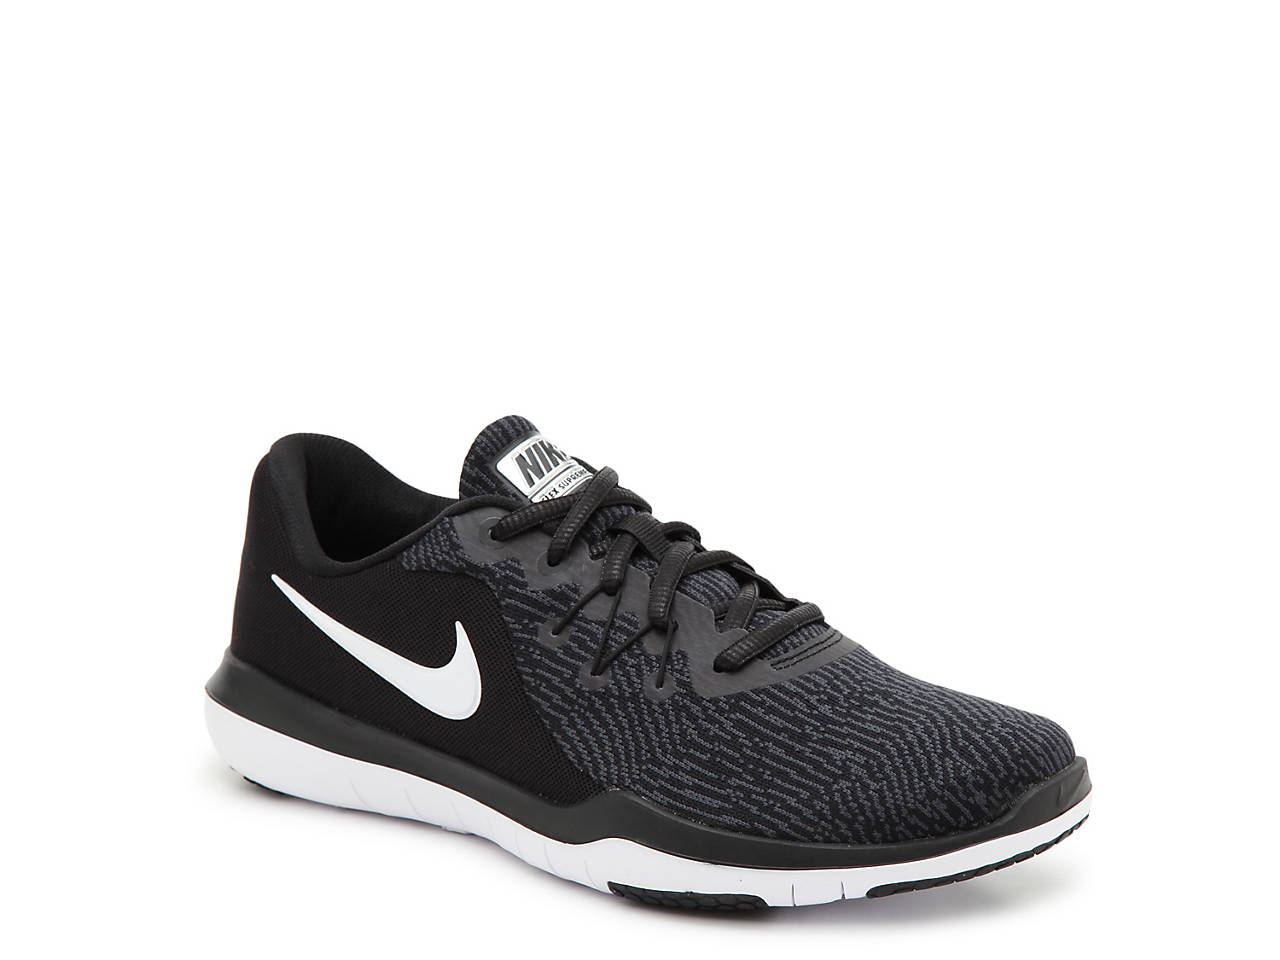 Nike Flex Supreme 6 Lightweight Training Shoe - Women s Women s ... 33336e82145f